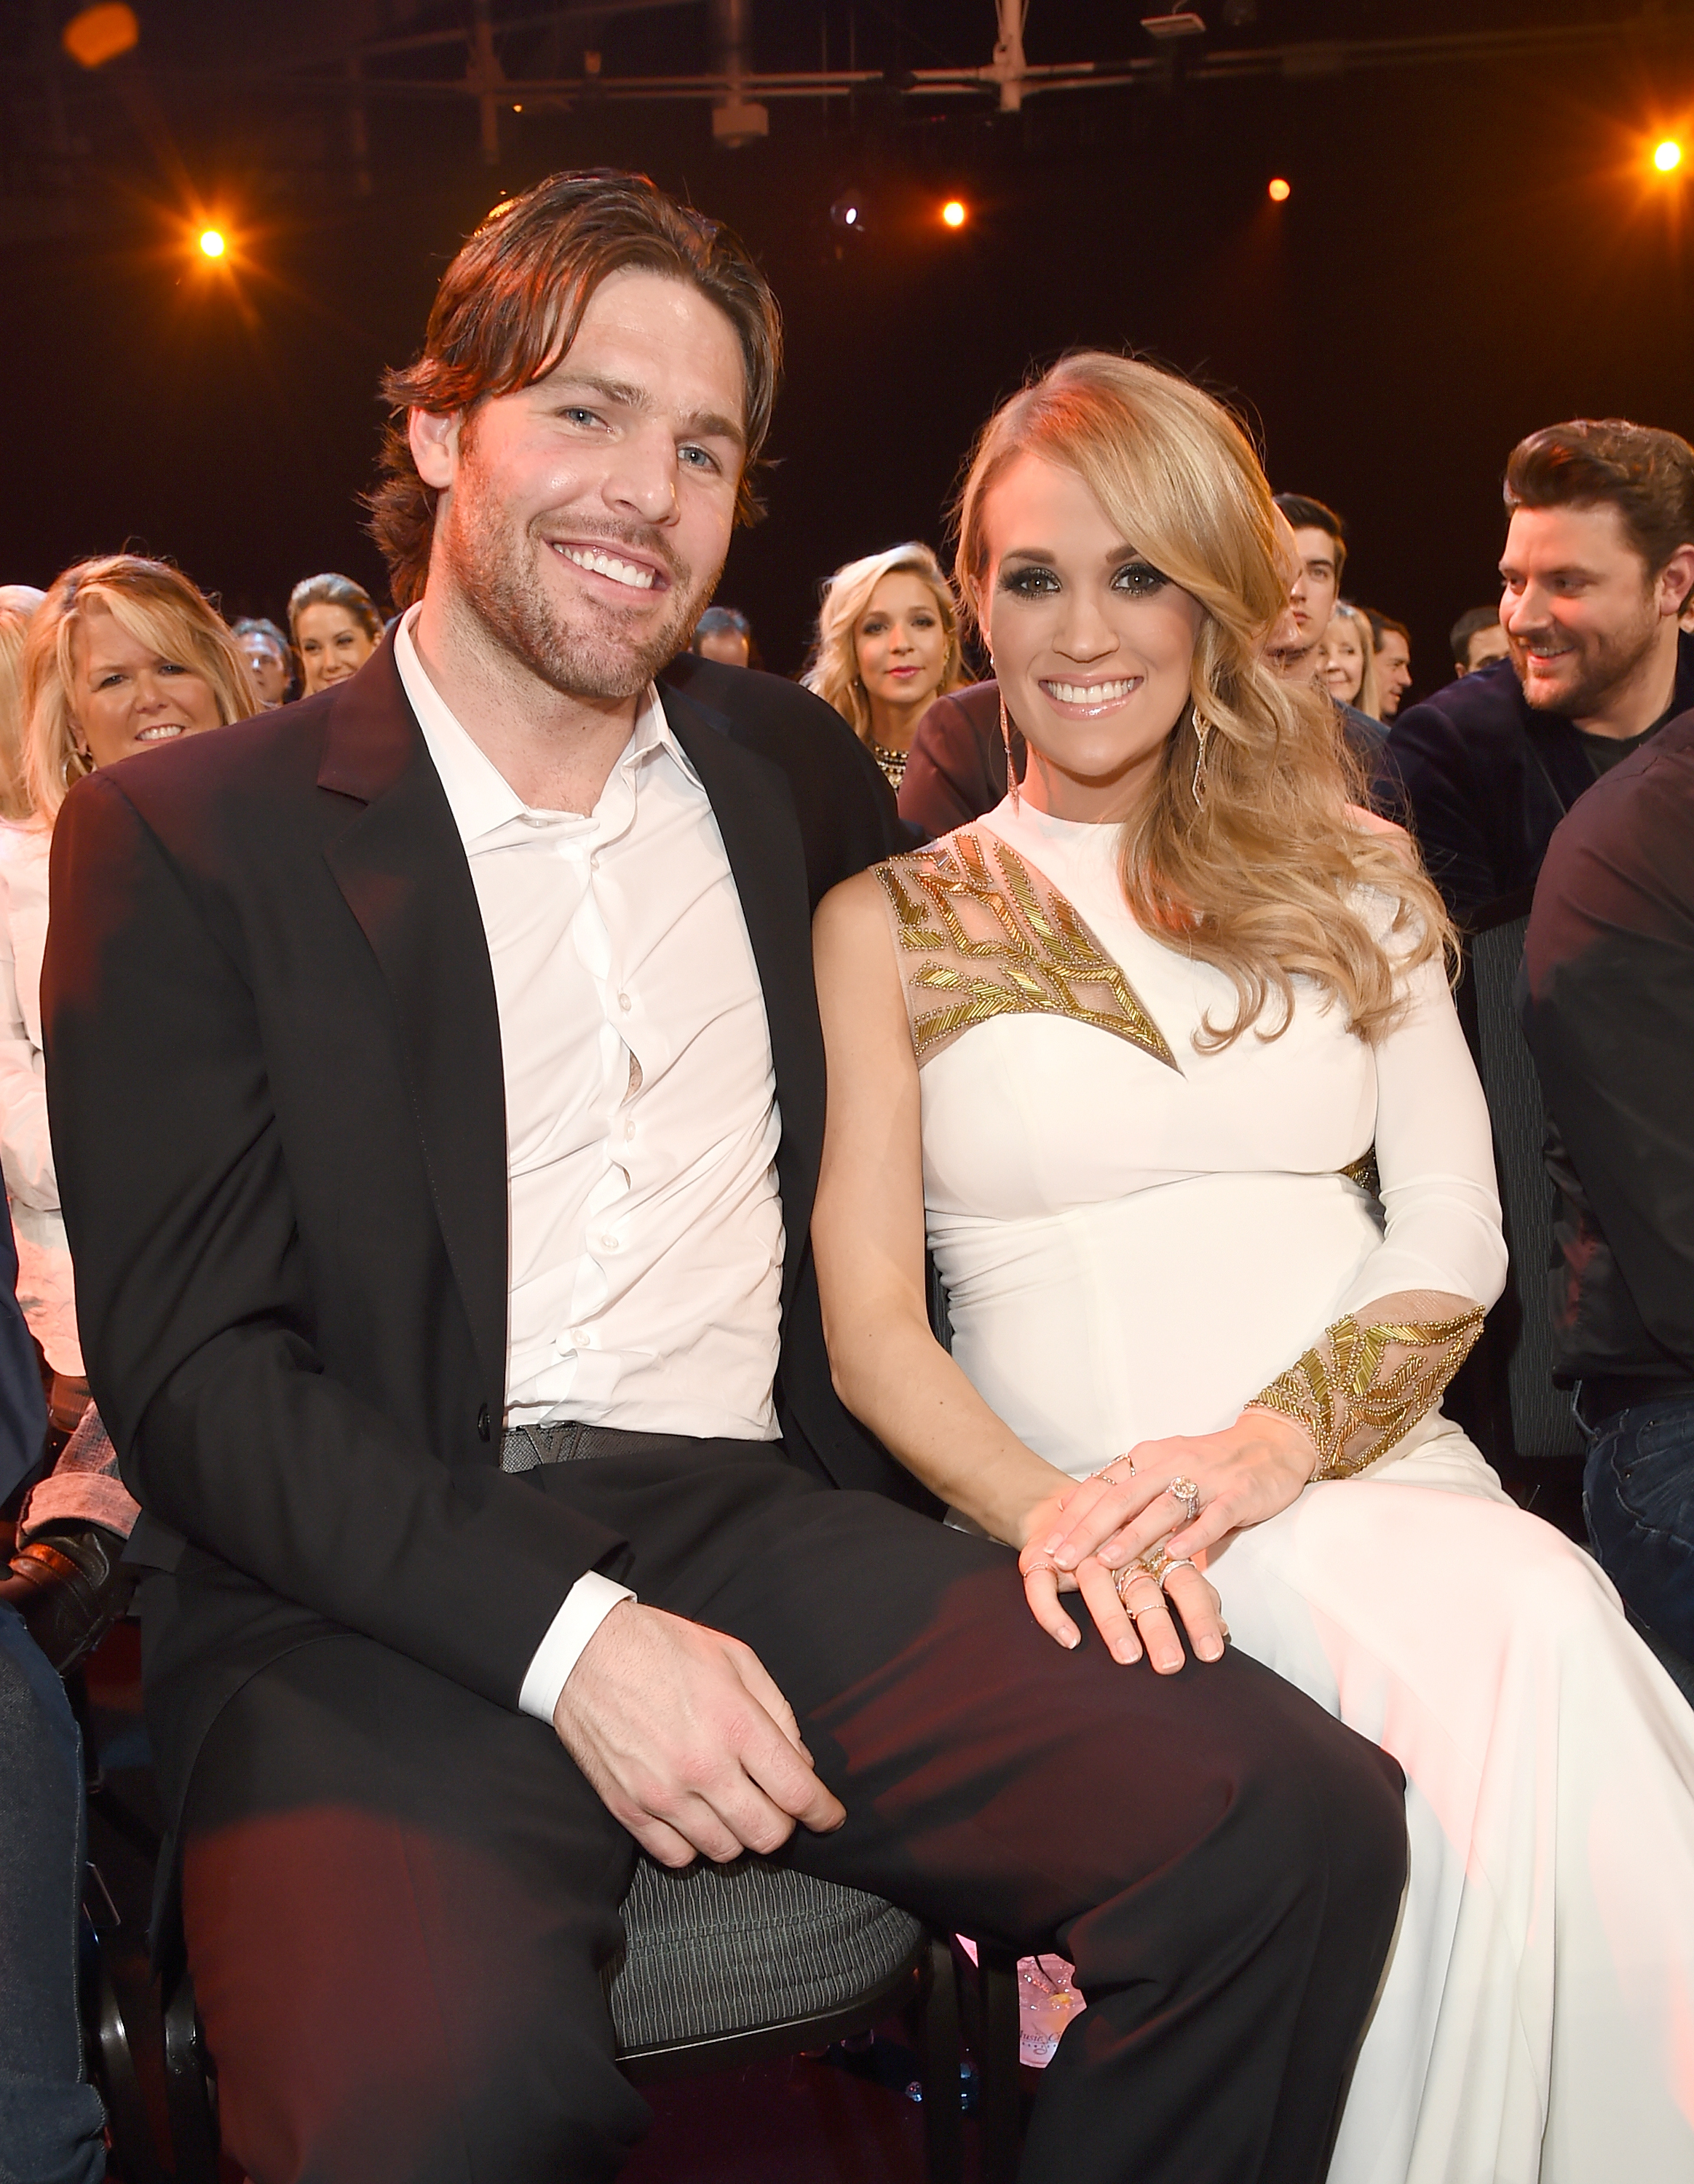 Professional hockey player Mike Fischer (L) and recording artist Carrie Underwood attend the 2014 American Country Countdown Awards in Nashville, Tenn. on Dec. 15, 2014.